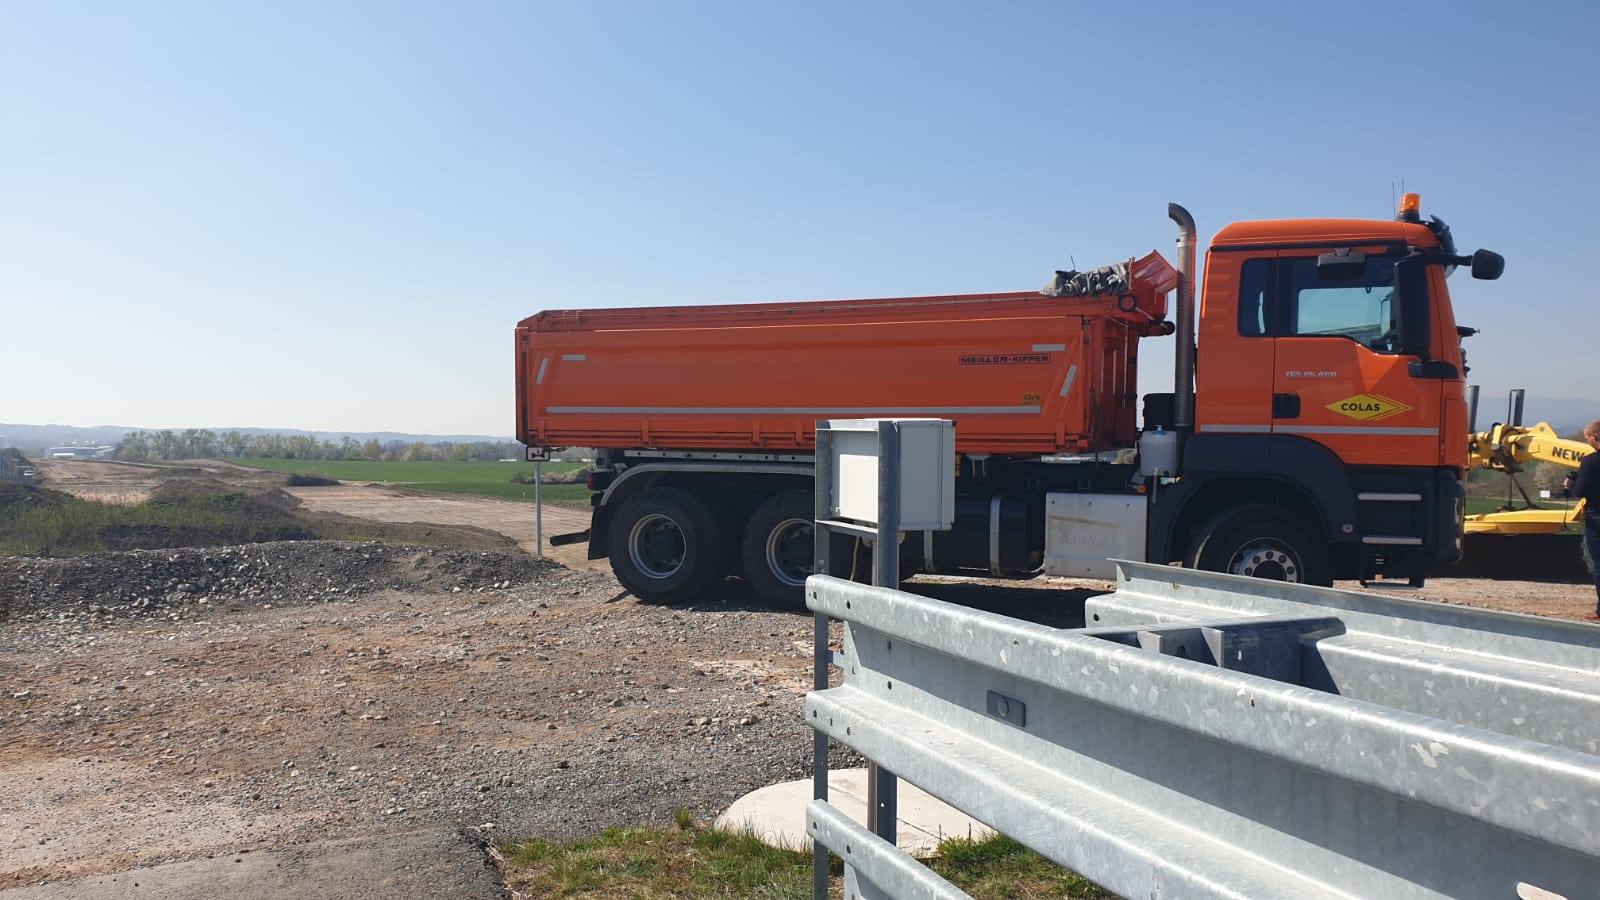 Minister Ťok kick-started the construction of the second section of České Budějovice bypass